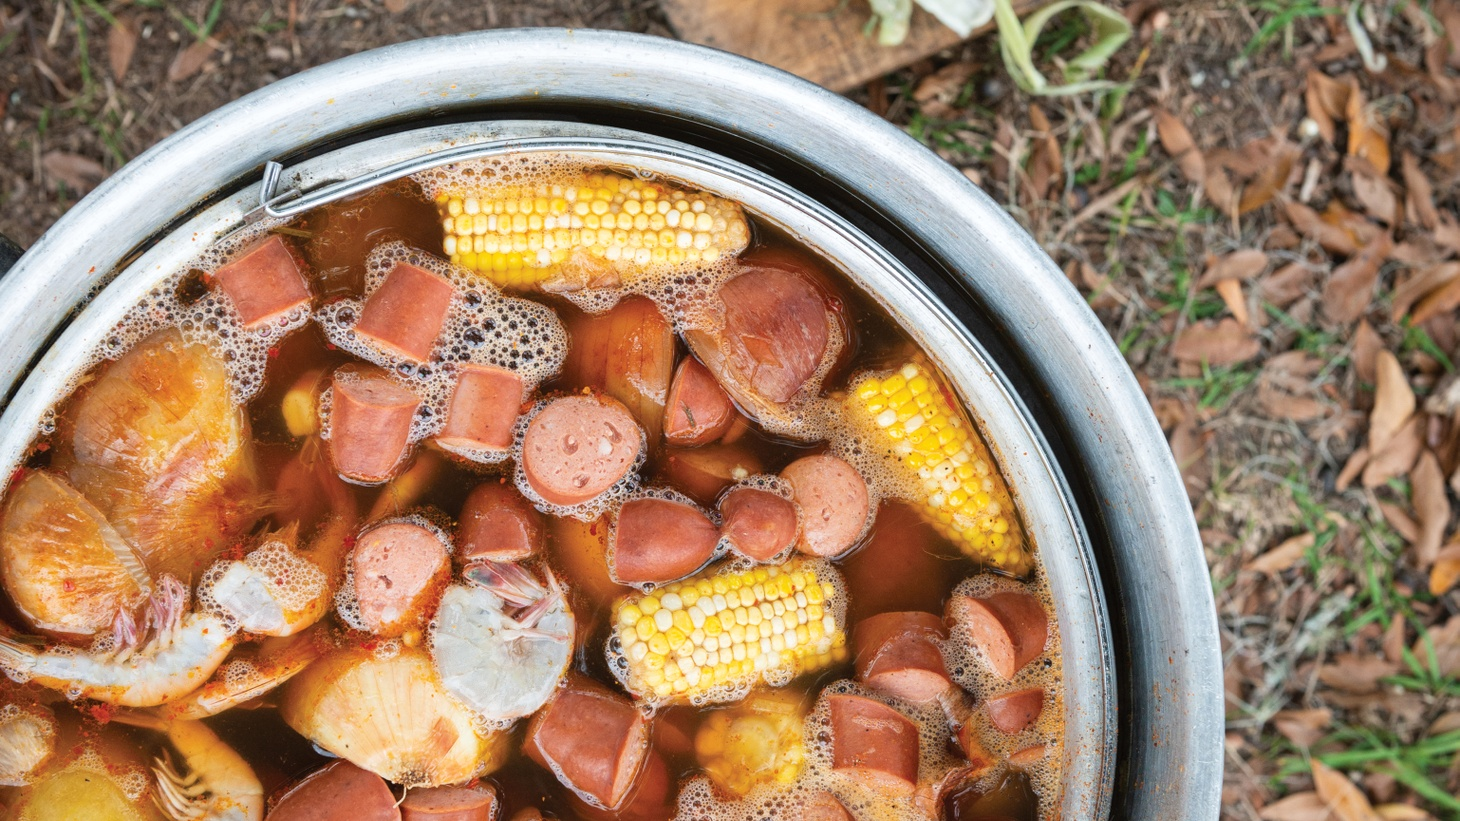 Chef Matthew Raiford adds Wainwright's smoked sausage and blue crabs to his lowcountry boil.